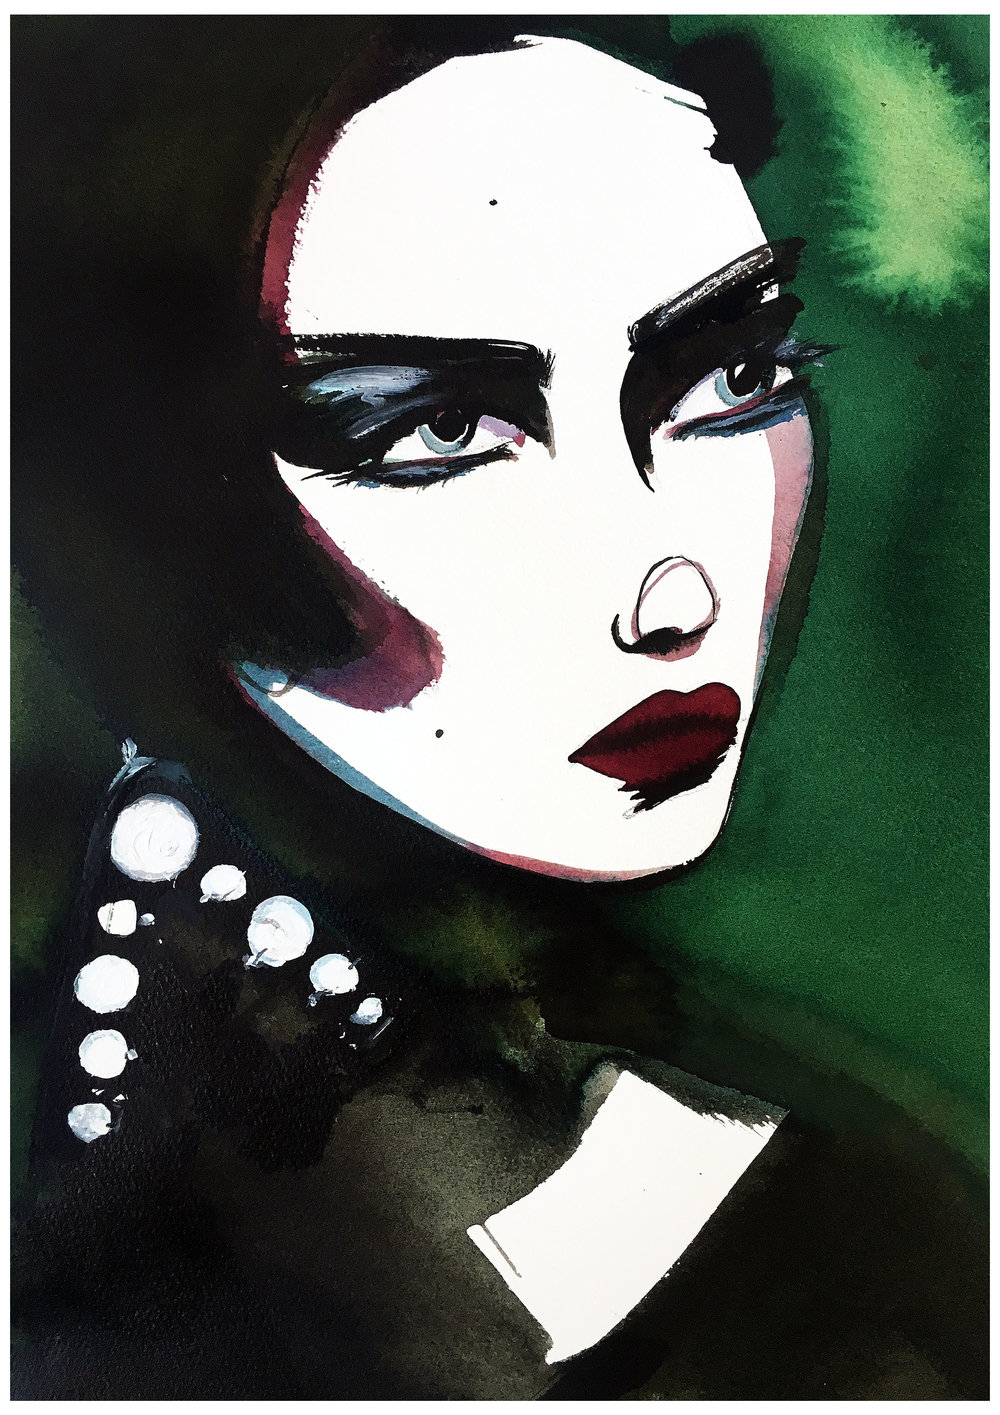 Dior Beauty - Mixed media painting on paperA3 (29.7x42cm)£400